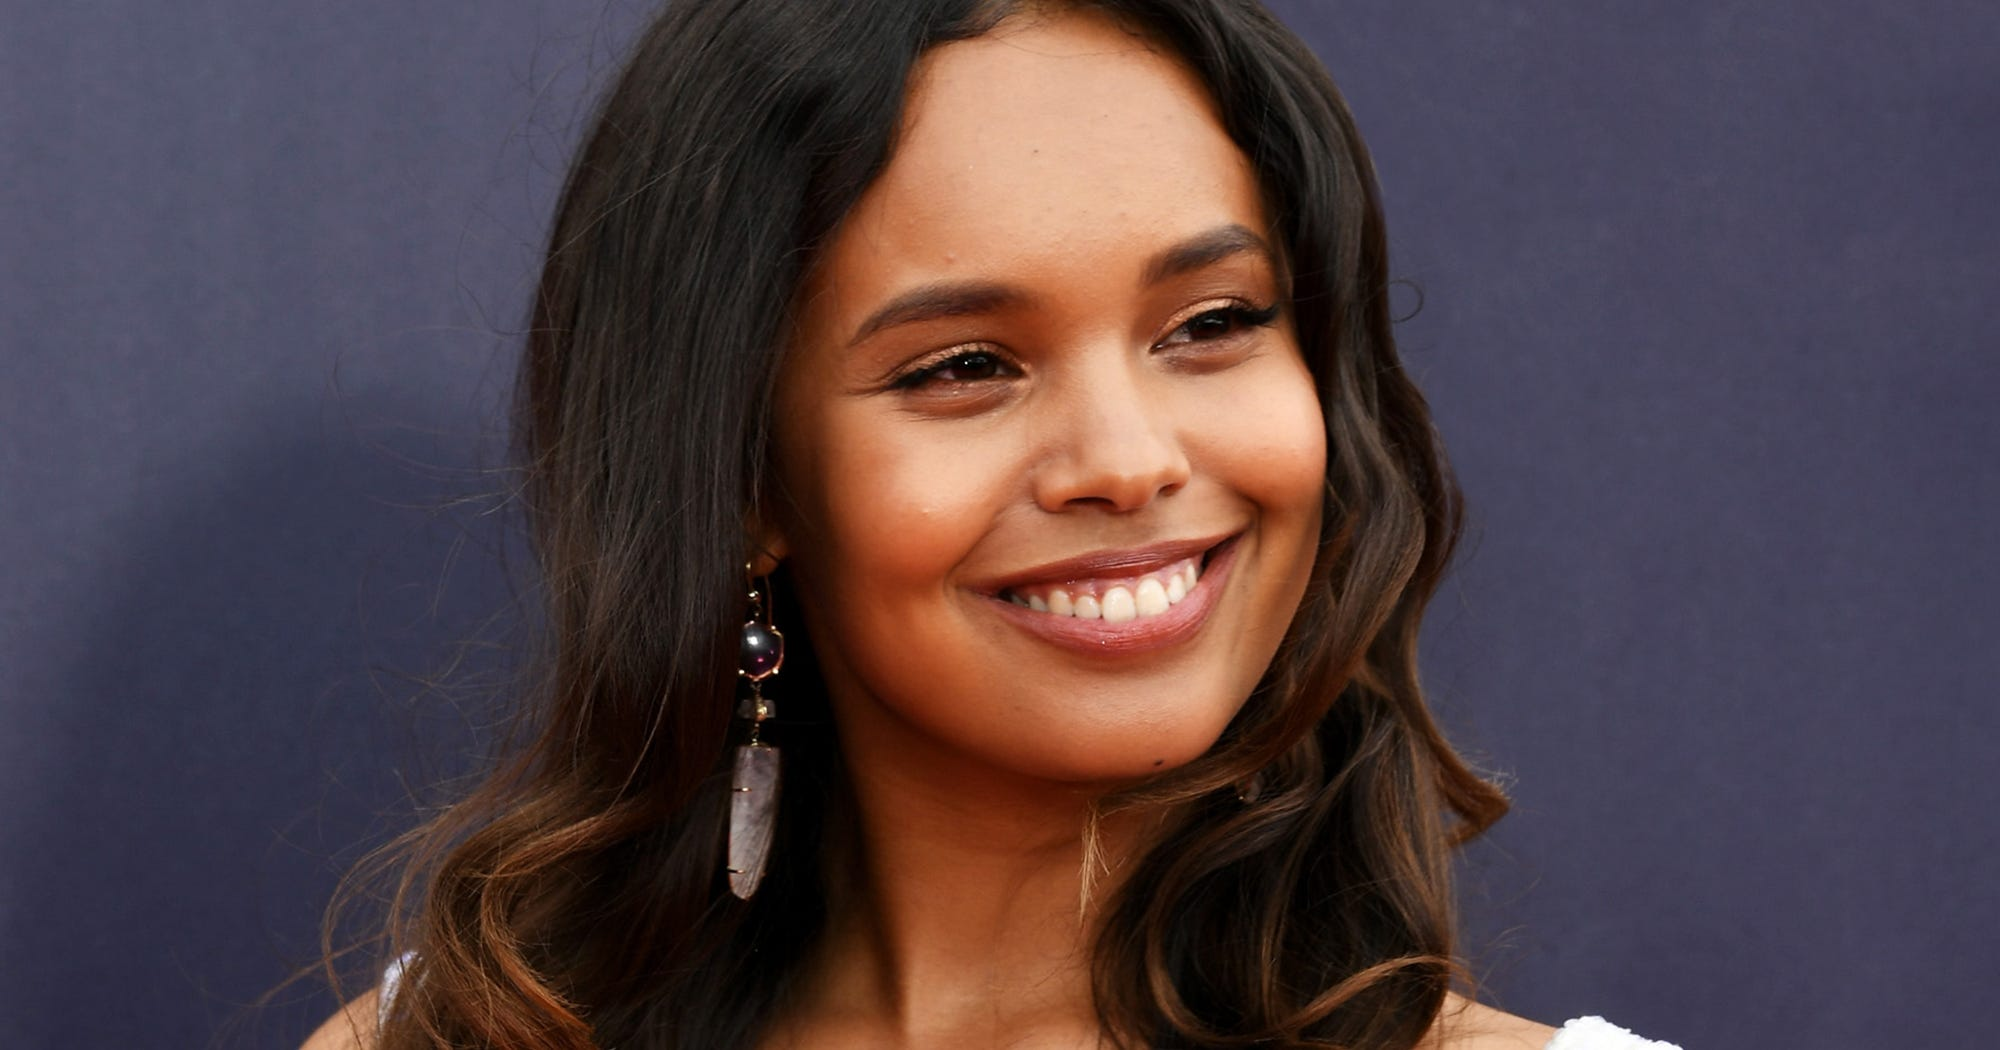 13 Reasons Why Star Alisha Boe Has The Cutest Tattoos — & No One Ever Noticed